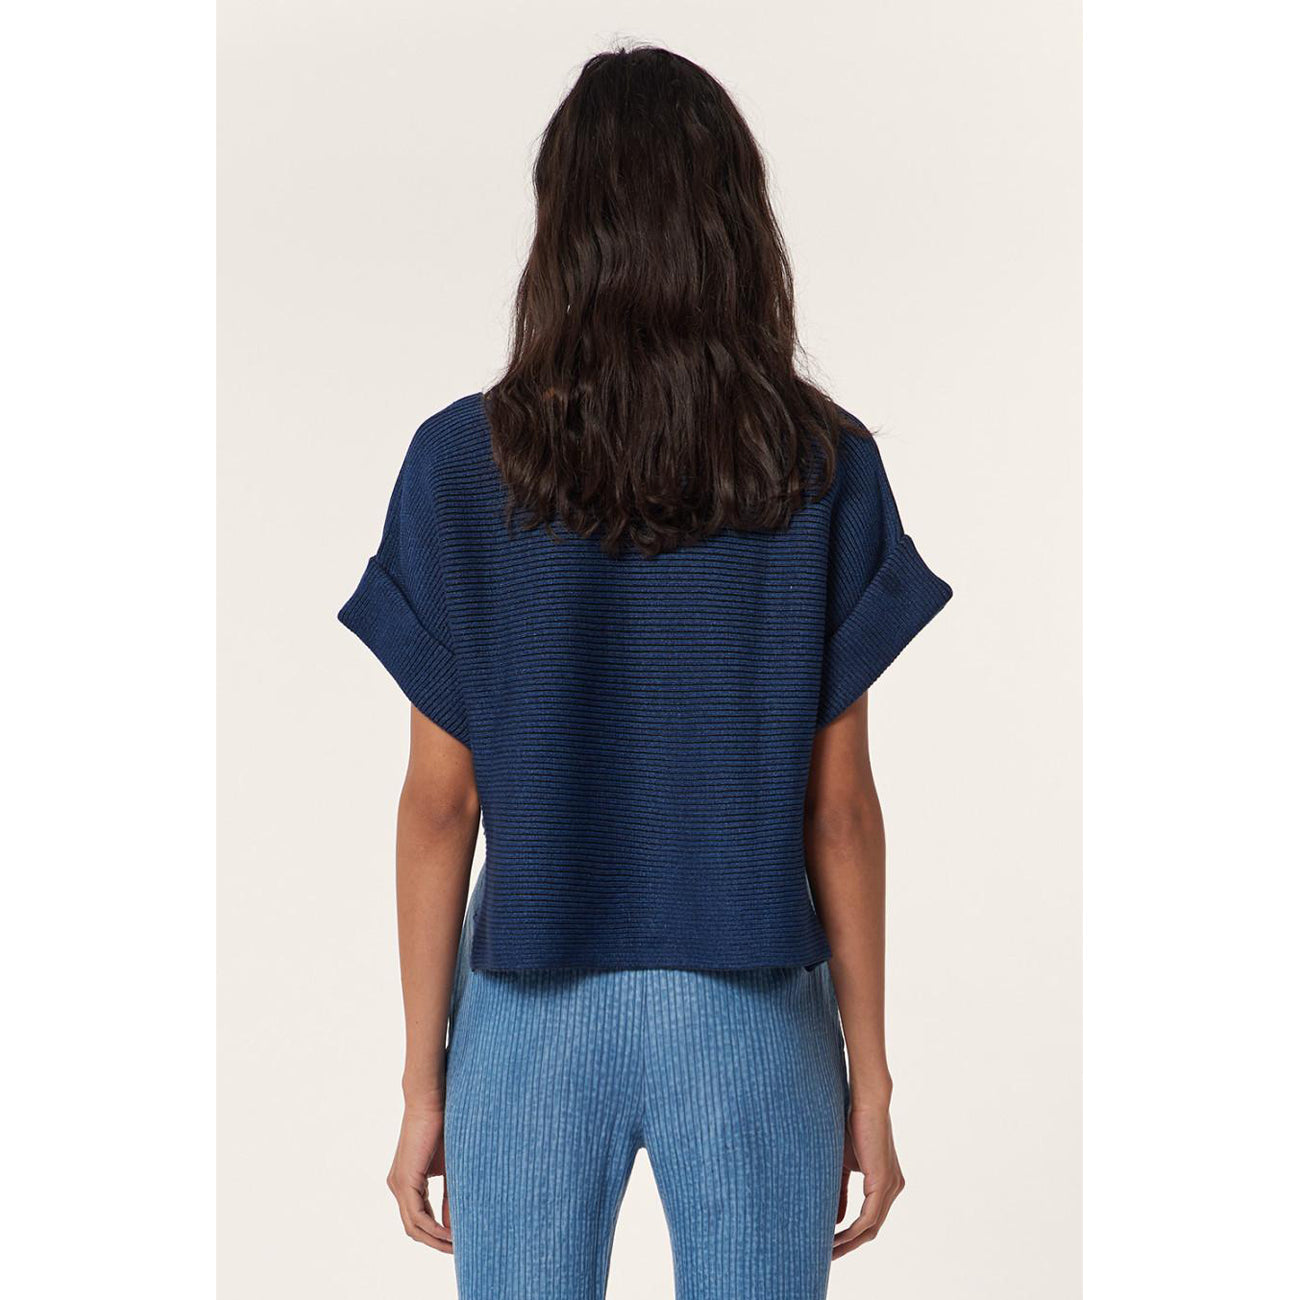 Mara Hoffman Margaret Organic Cotton Pullover Sweater